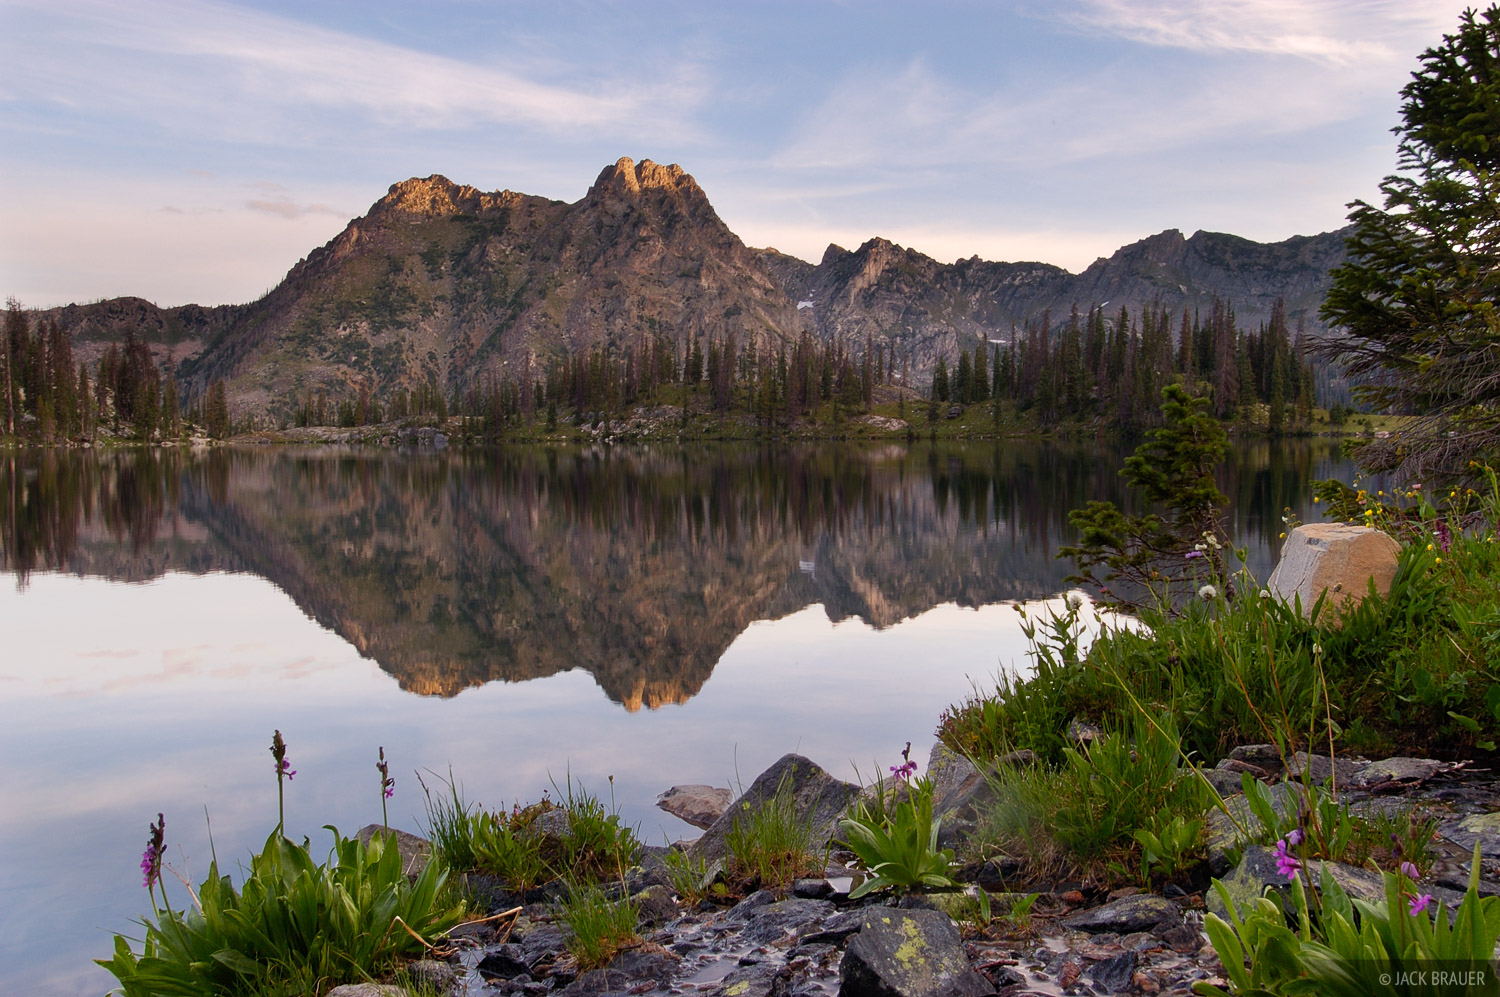 Big Agnes, Gilpin Lake, Zirkel Wilderness, Park Range, Colorado, photo